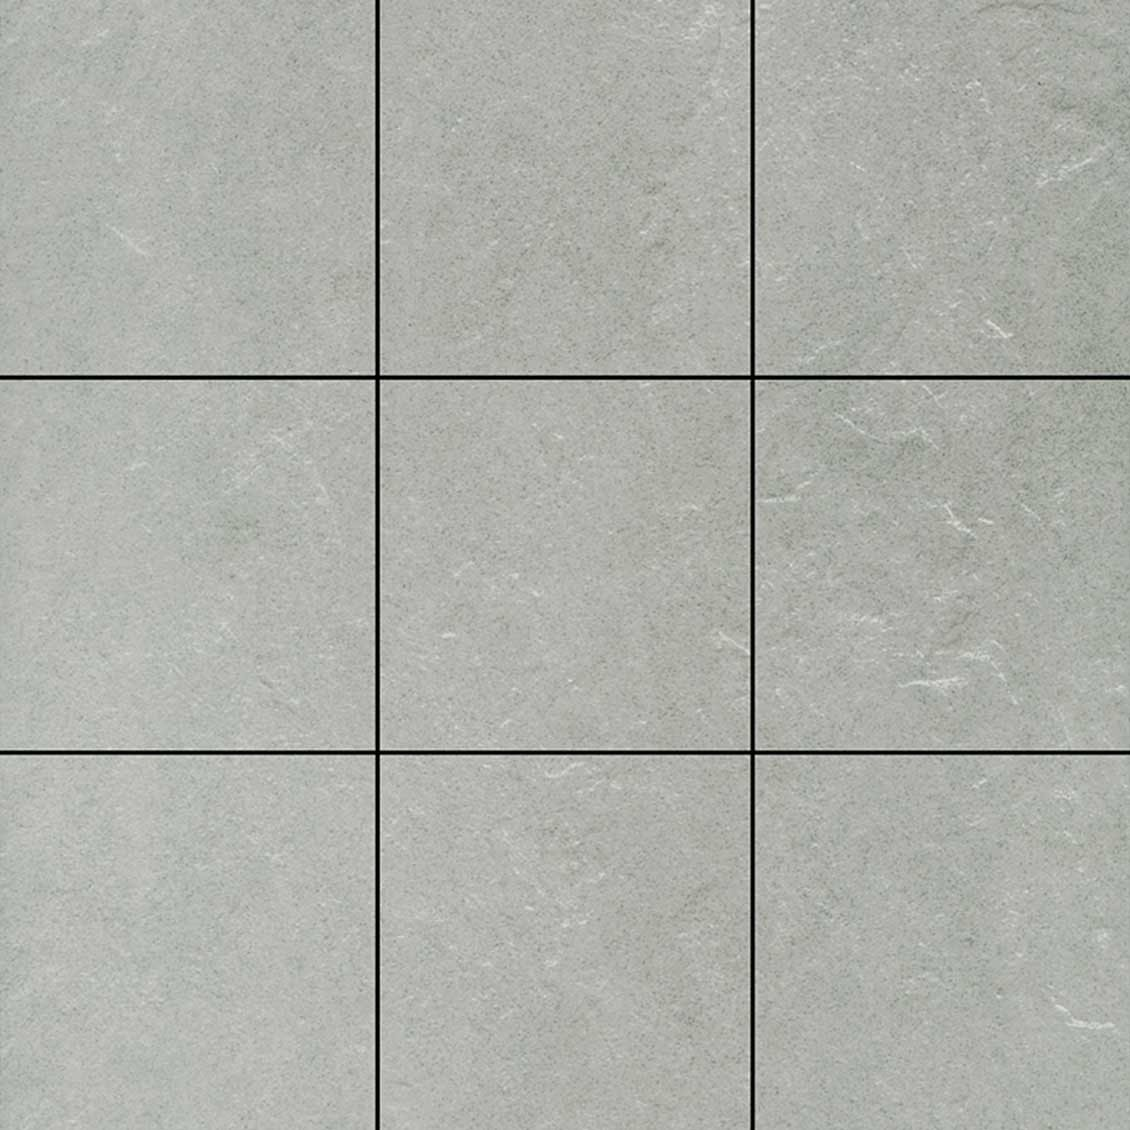 Carrelage design carrelage texture moderne design pour for Carrelage de sol